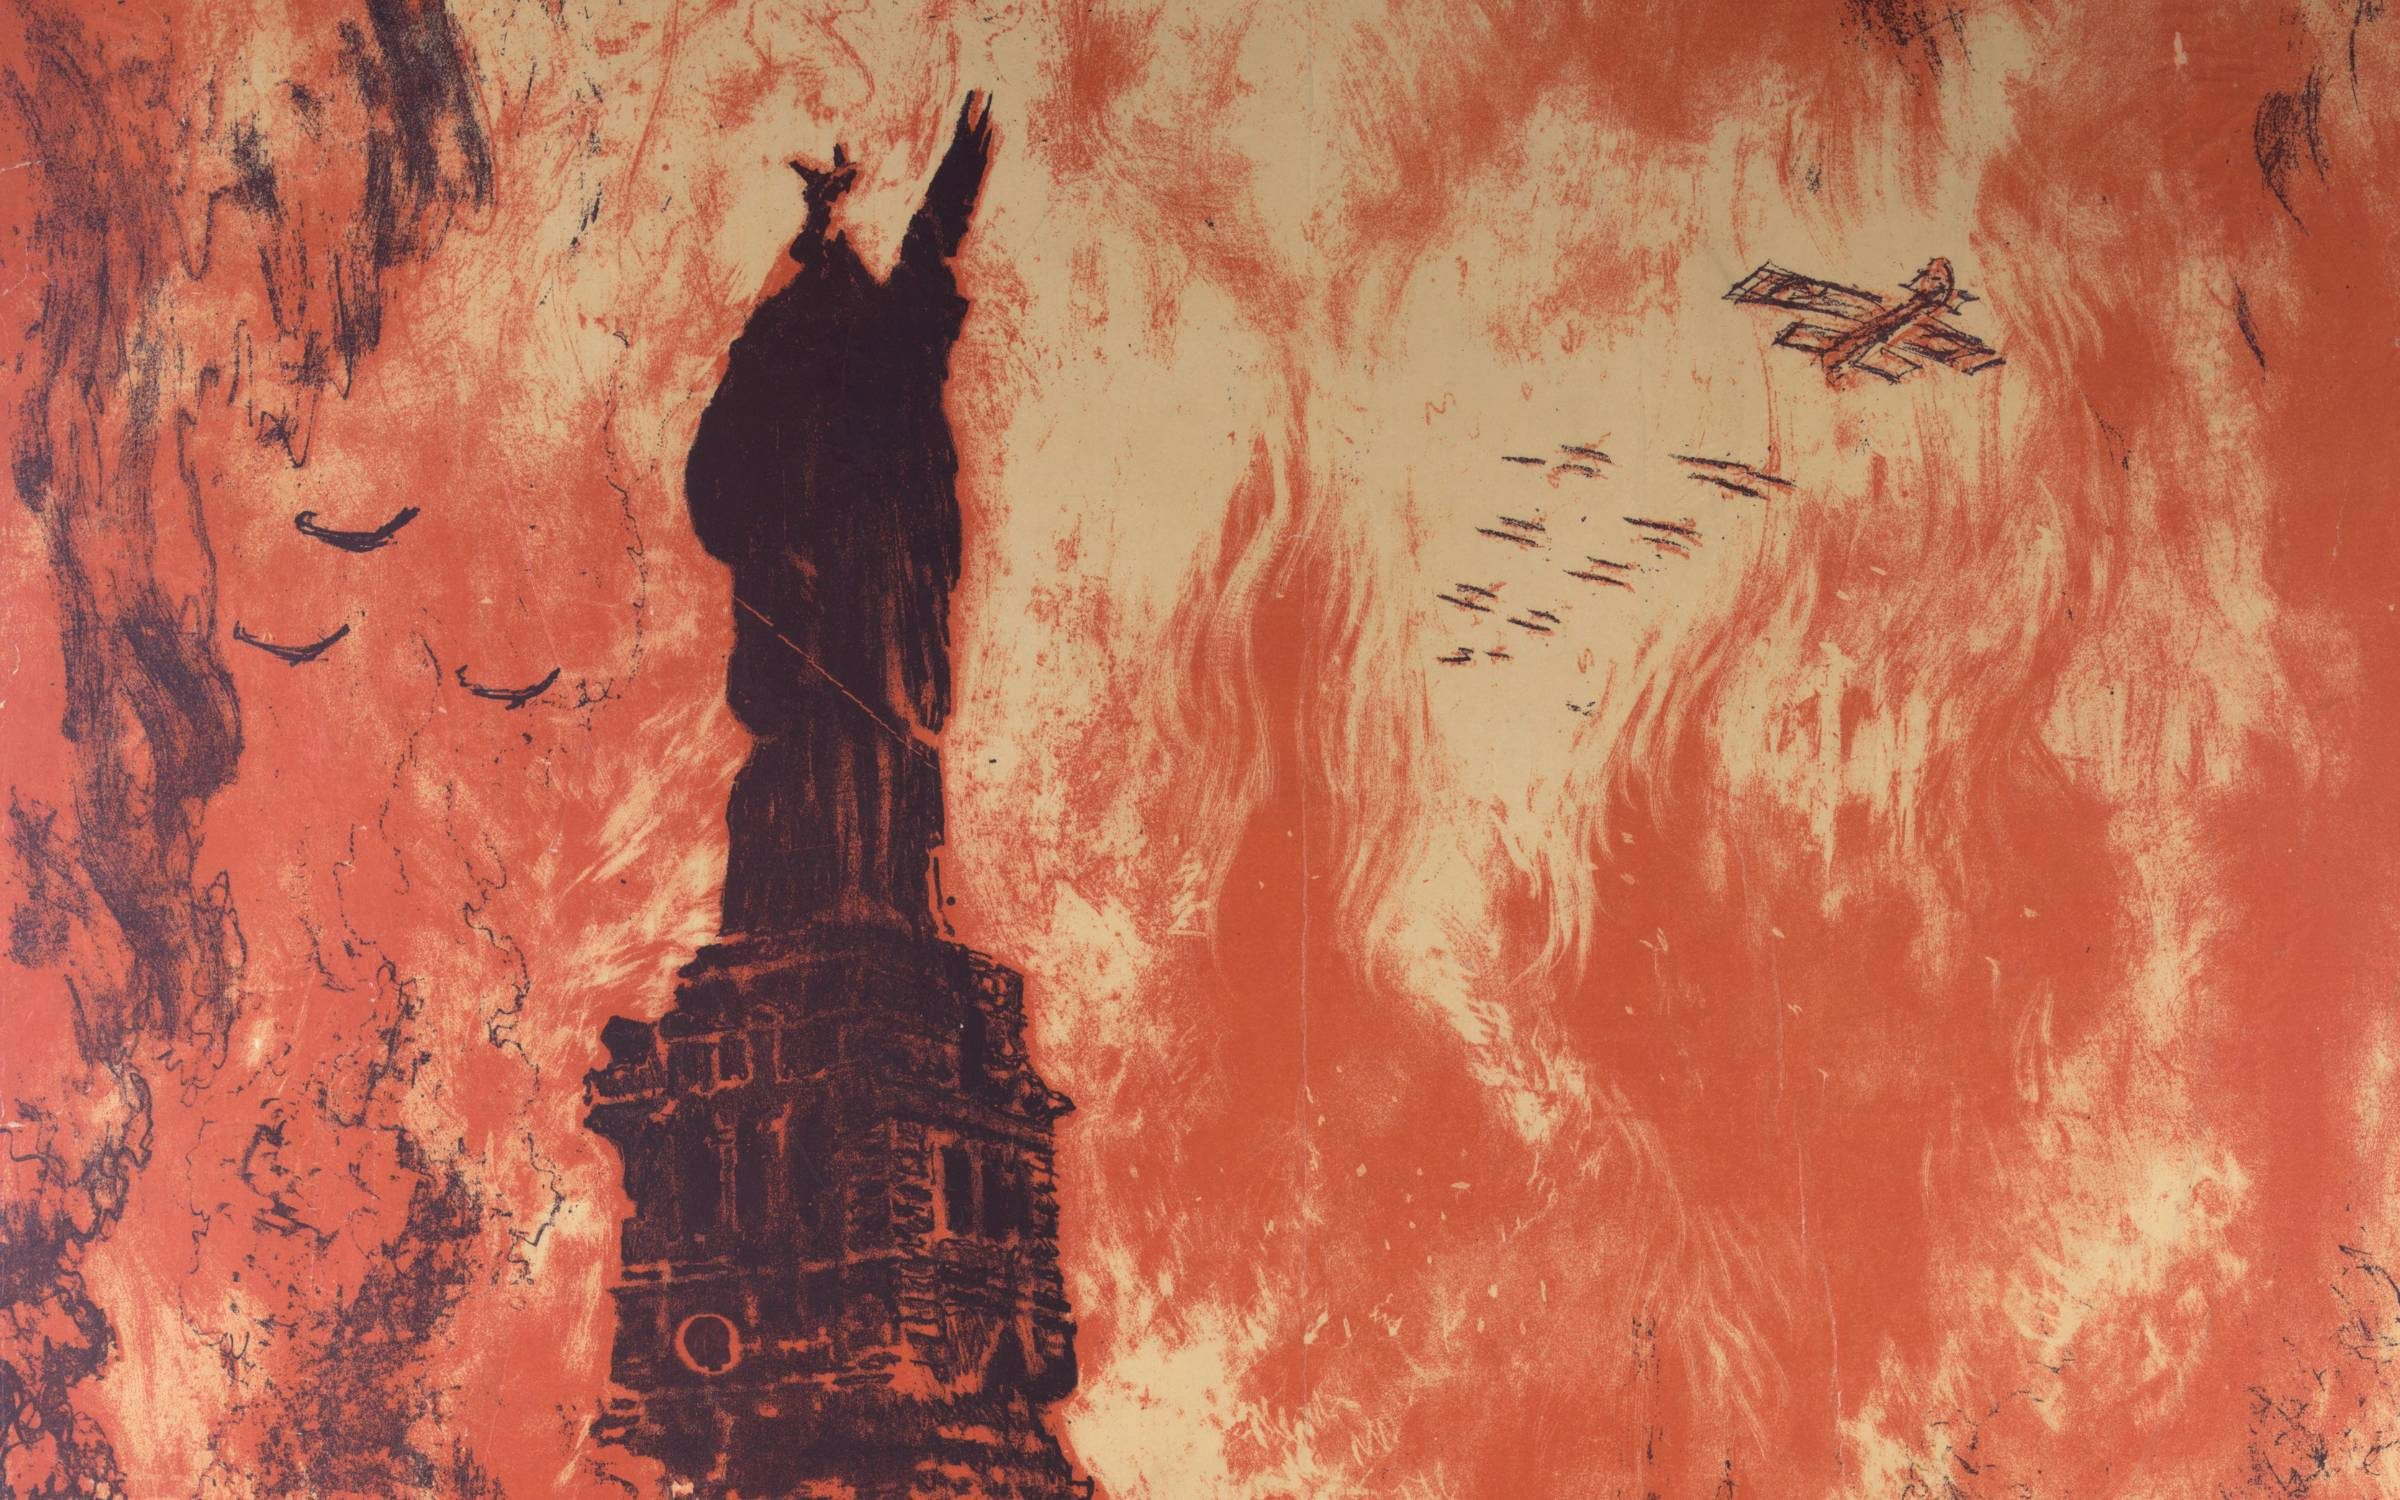 Poster showing the Statue of Liberty in ruins, and the New York skyline in flames. Published by Ketterlinus, Philadelphia. Color lithograph, 1918, 104×75 cm. Credit: VCG Wilson/Corbis via Getty Images